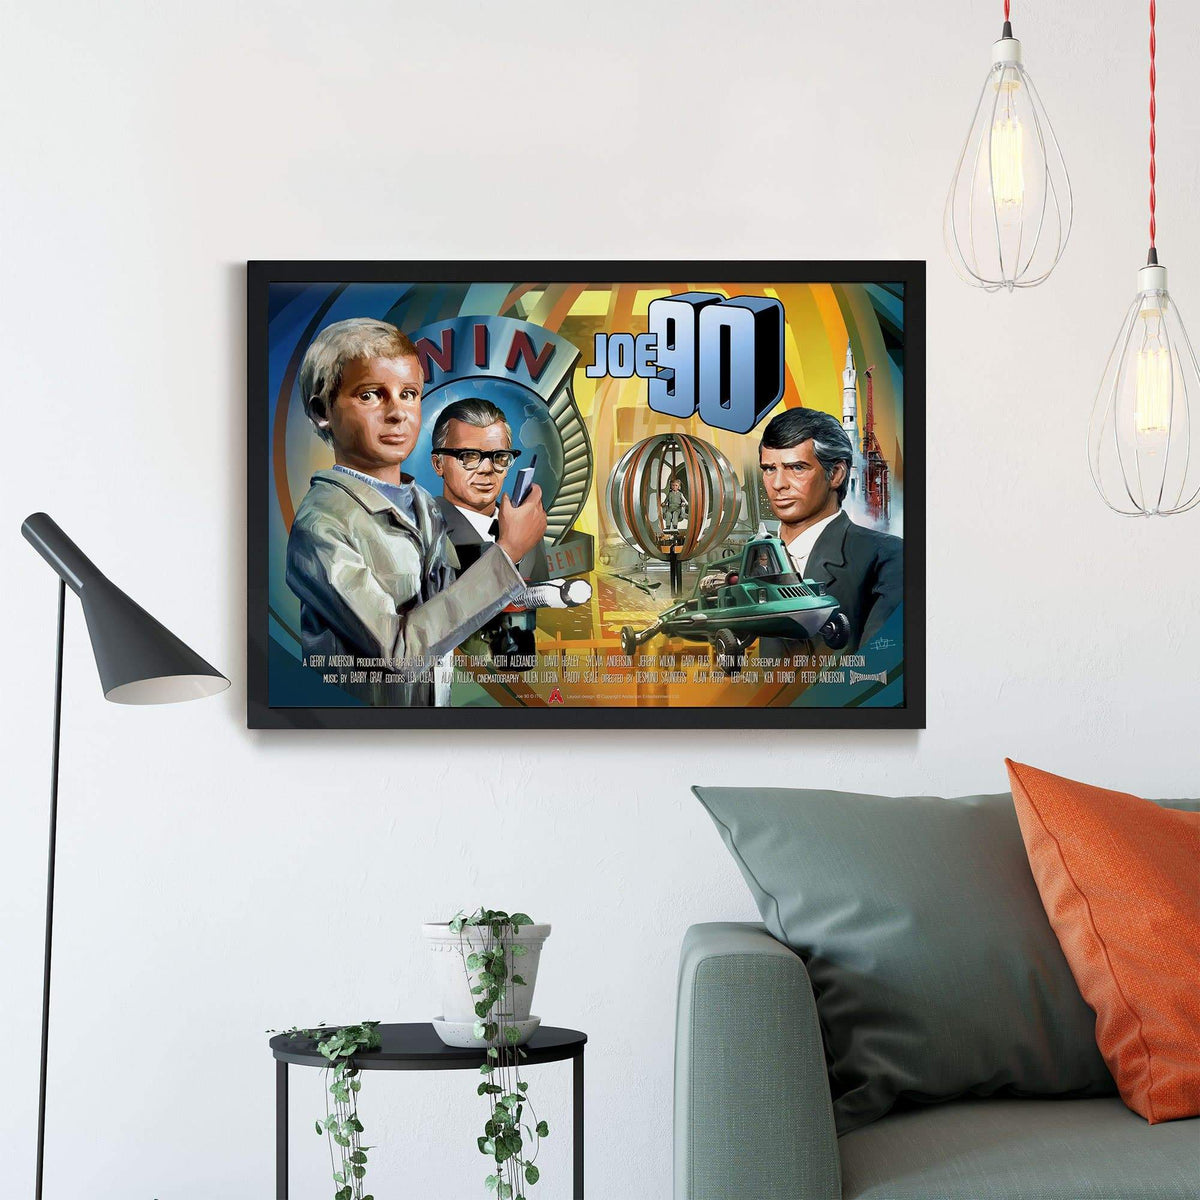 Joe 90 Framed Print [Official & Exclusive] - The Gerry Anderson Store